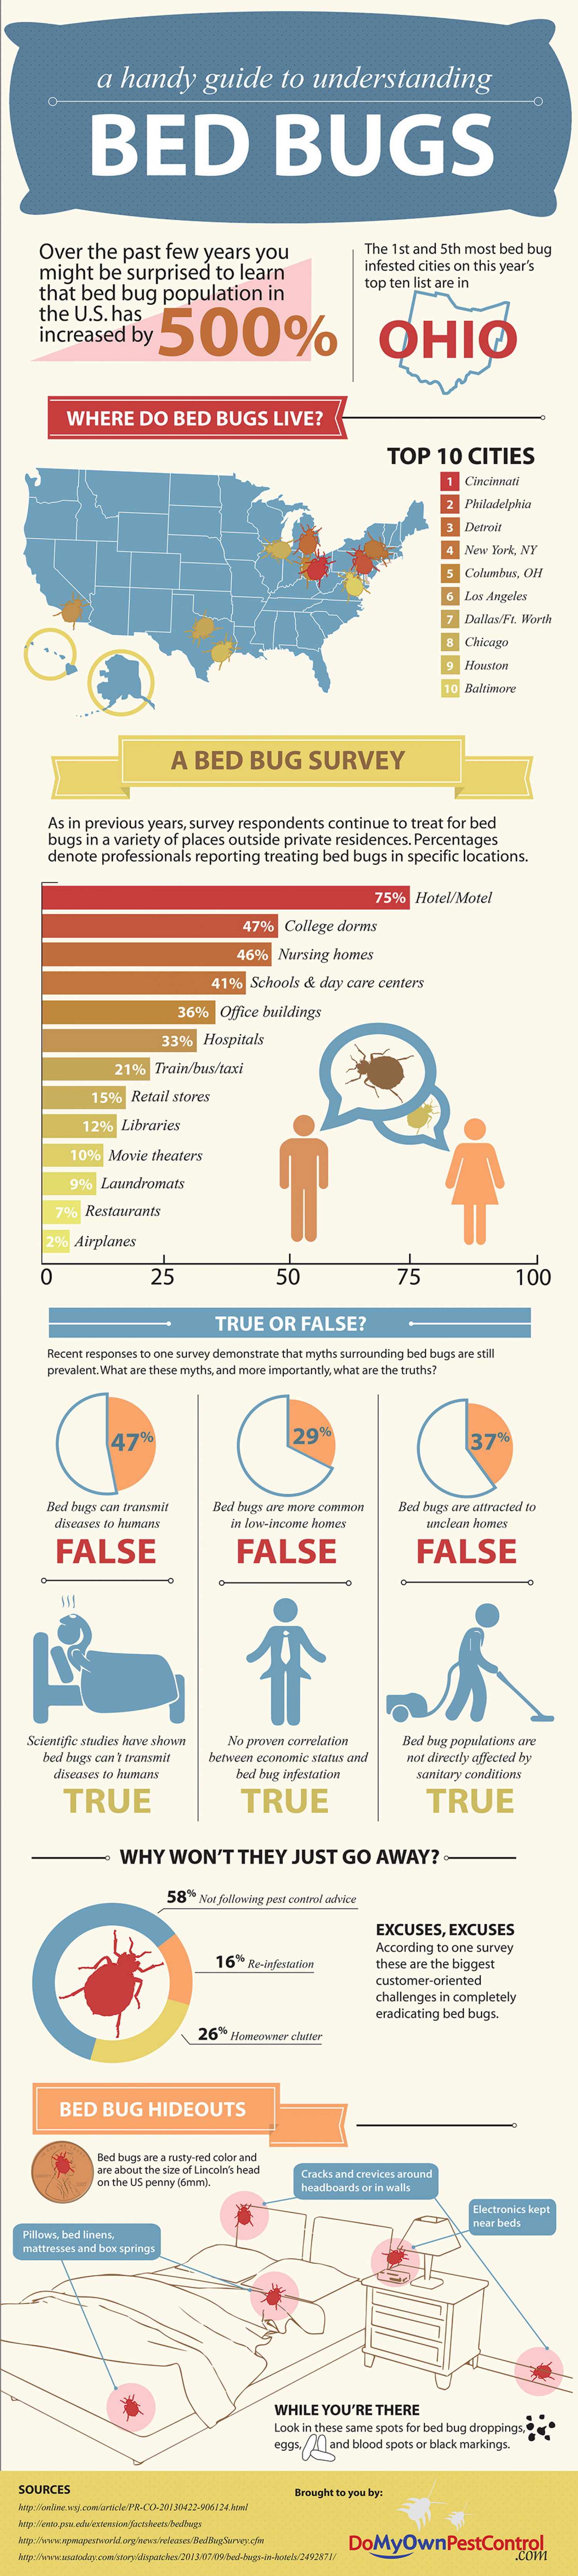 All About Bed Bugs Infographic